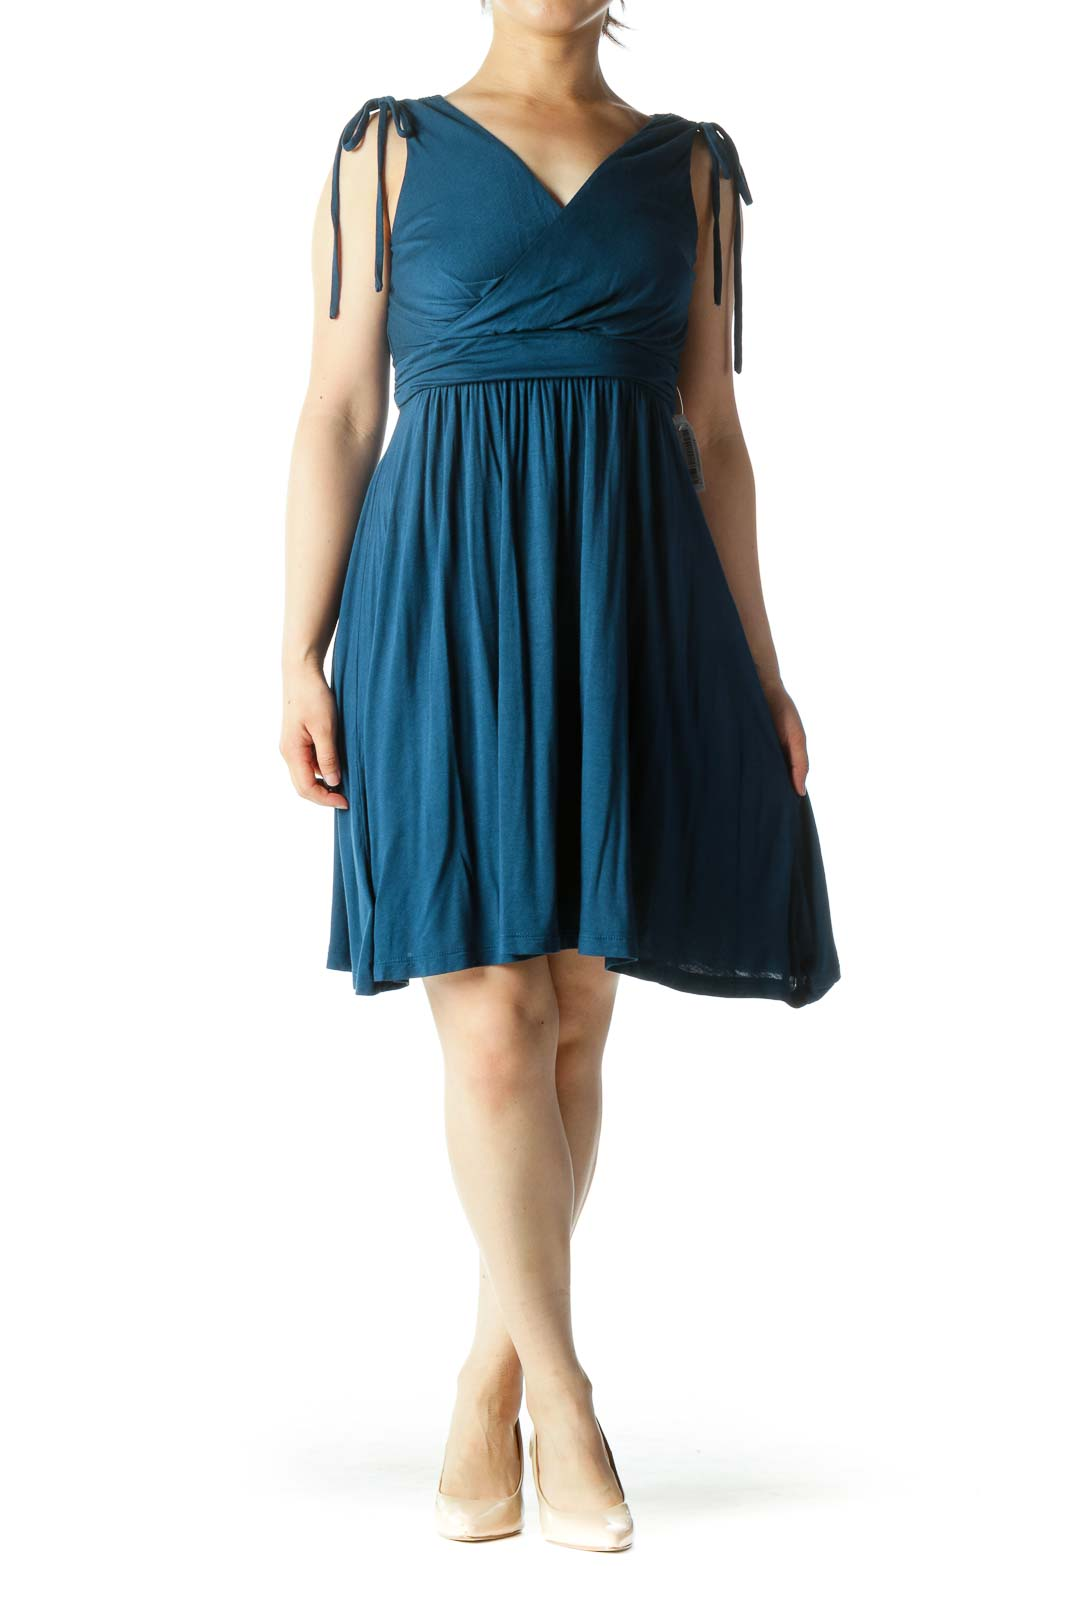 Teal Blue V-Neck Surplice Stretch Flared Day Dress